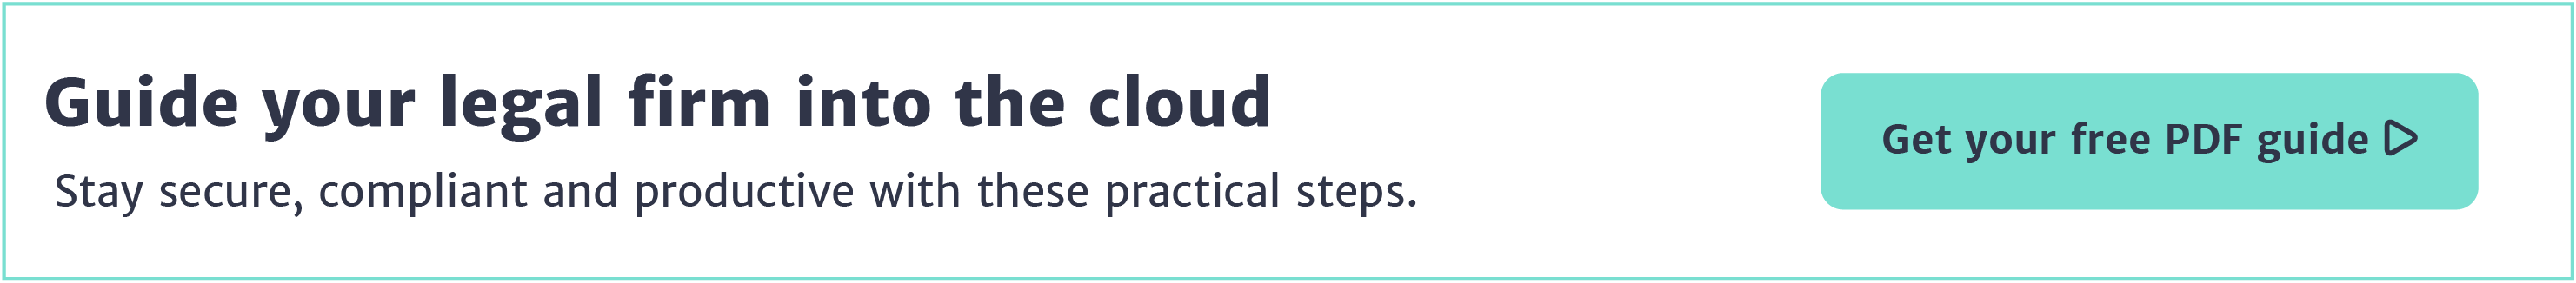 Free whitepaper: A guide to cloud for legal professionals >